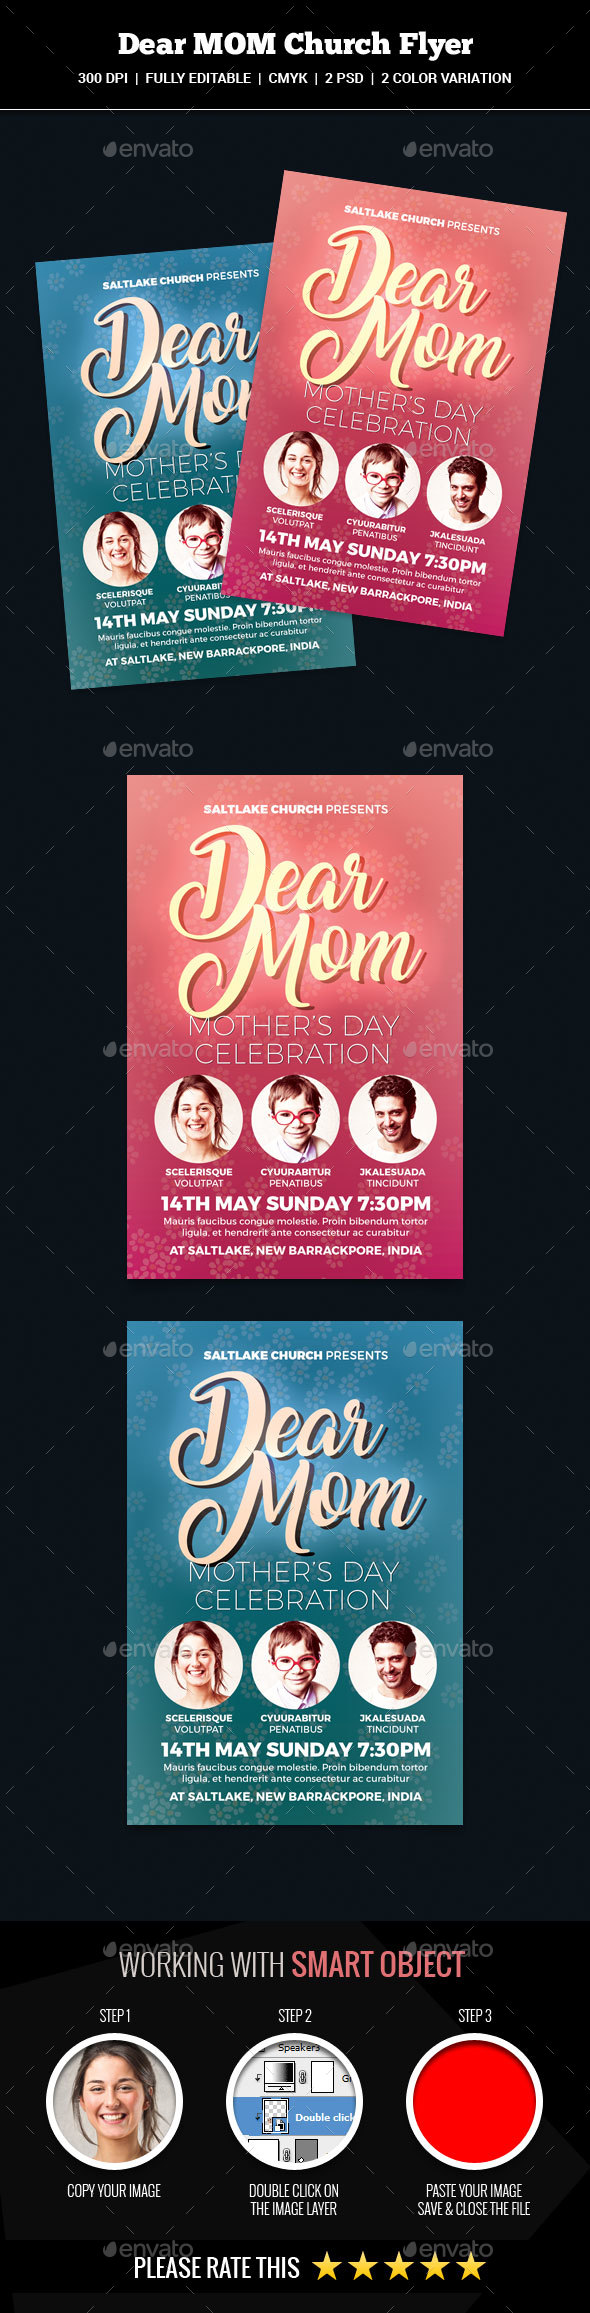 Dear Mom Church Flyer - Church Flyers